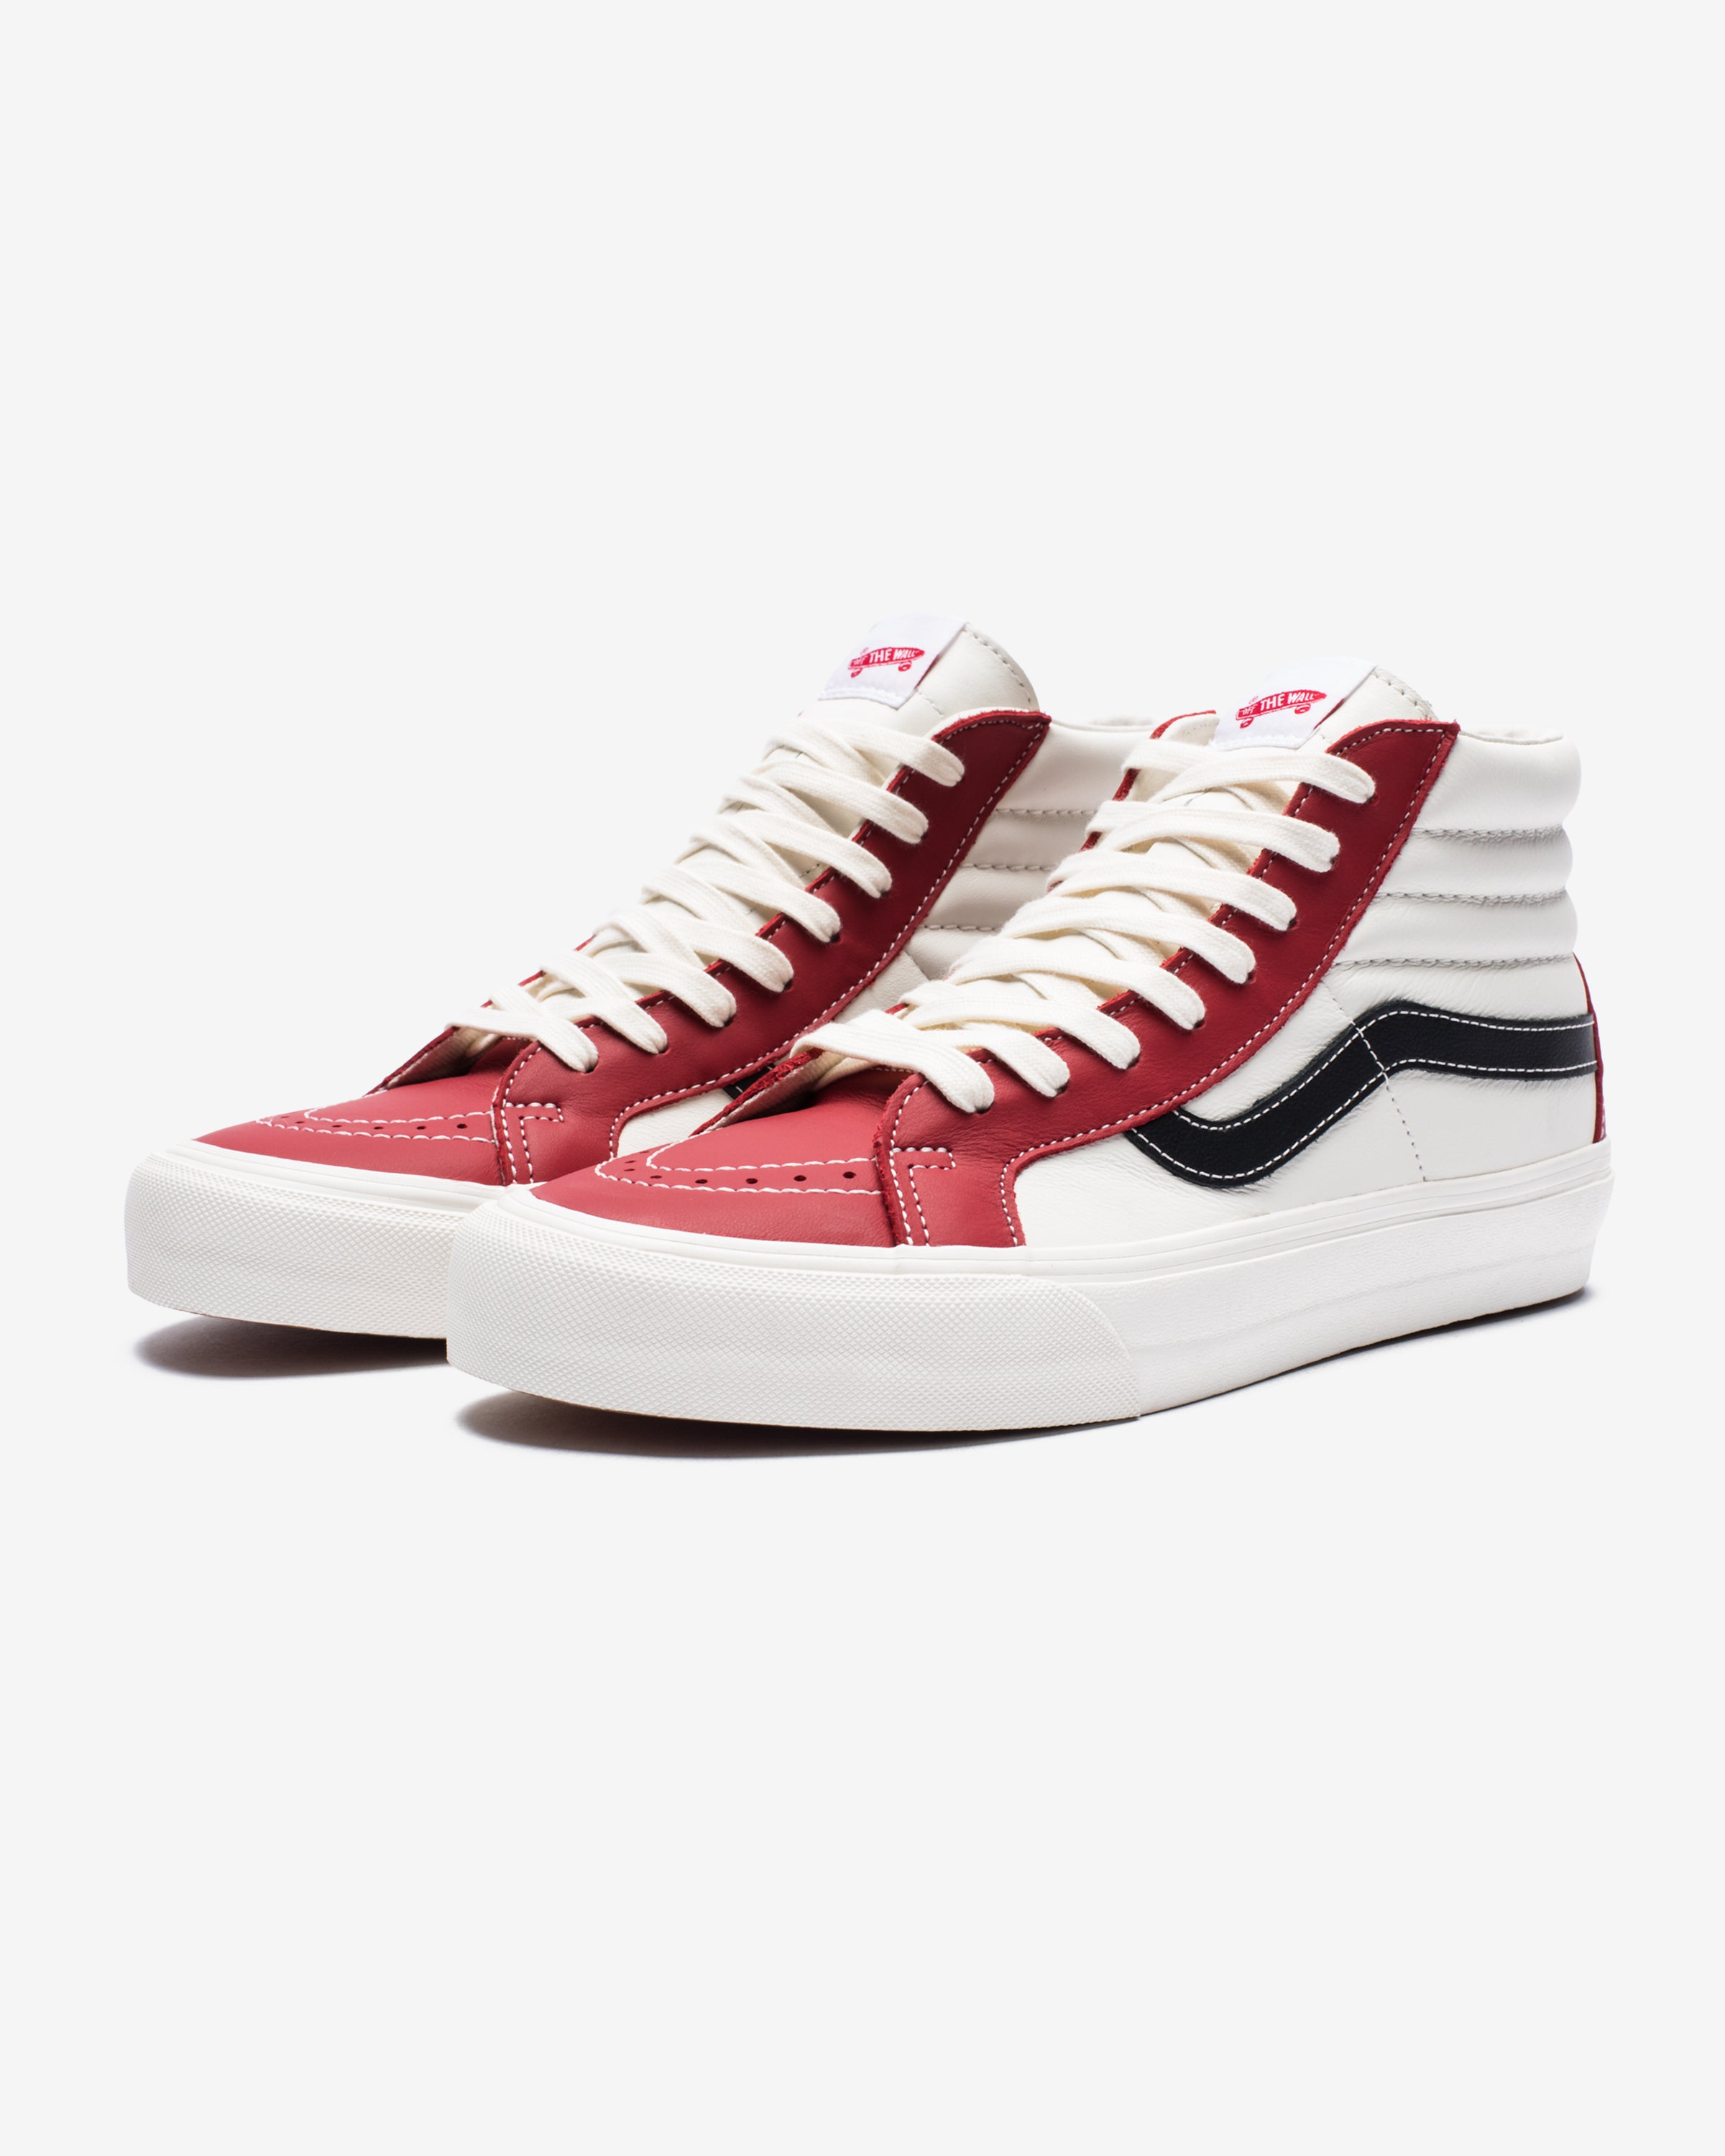 SK8-HI REISSUE VL (LEATHER) - CHLPEP